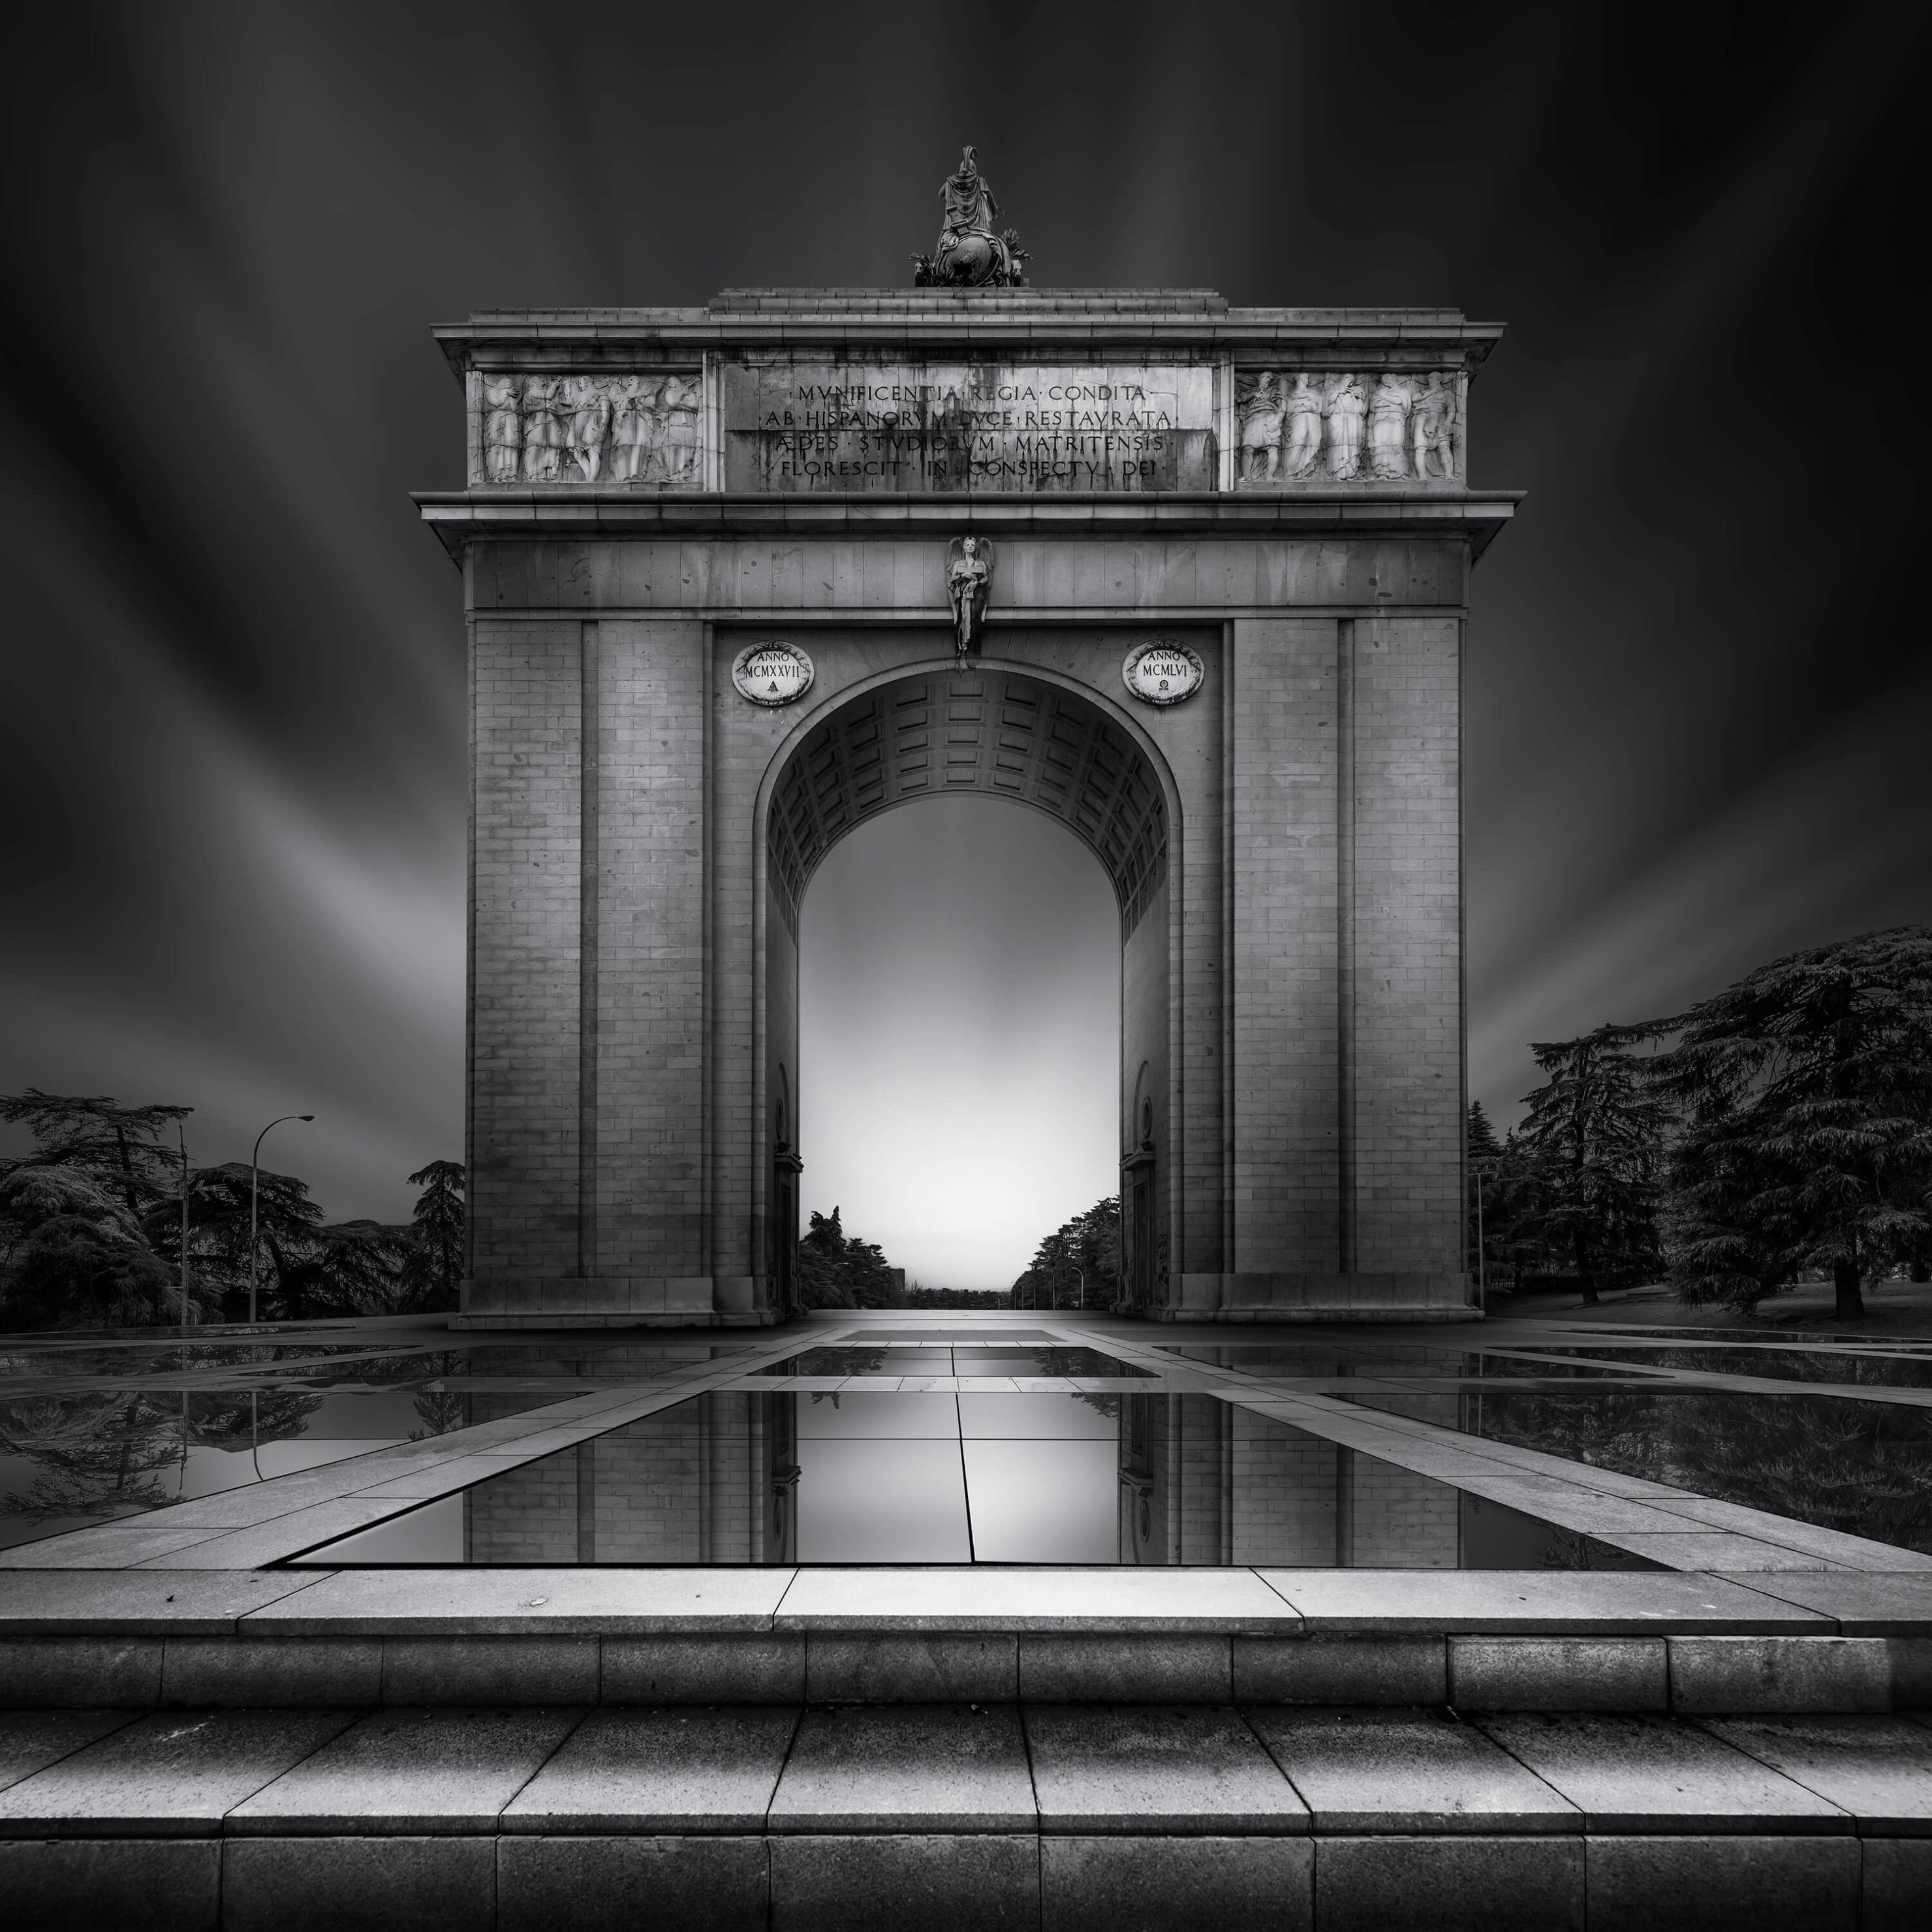 Arch of Moncloa